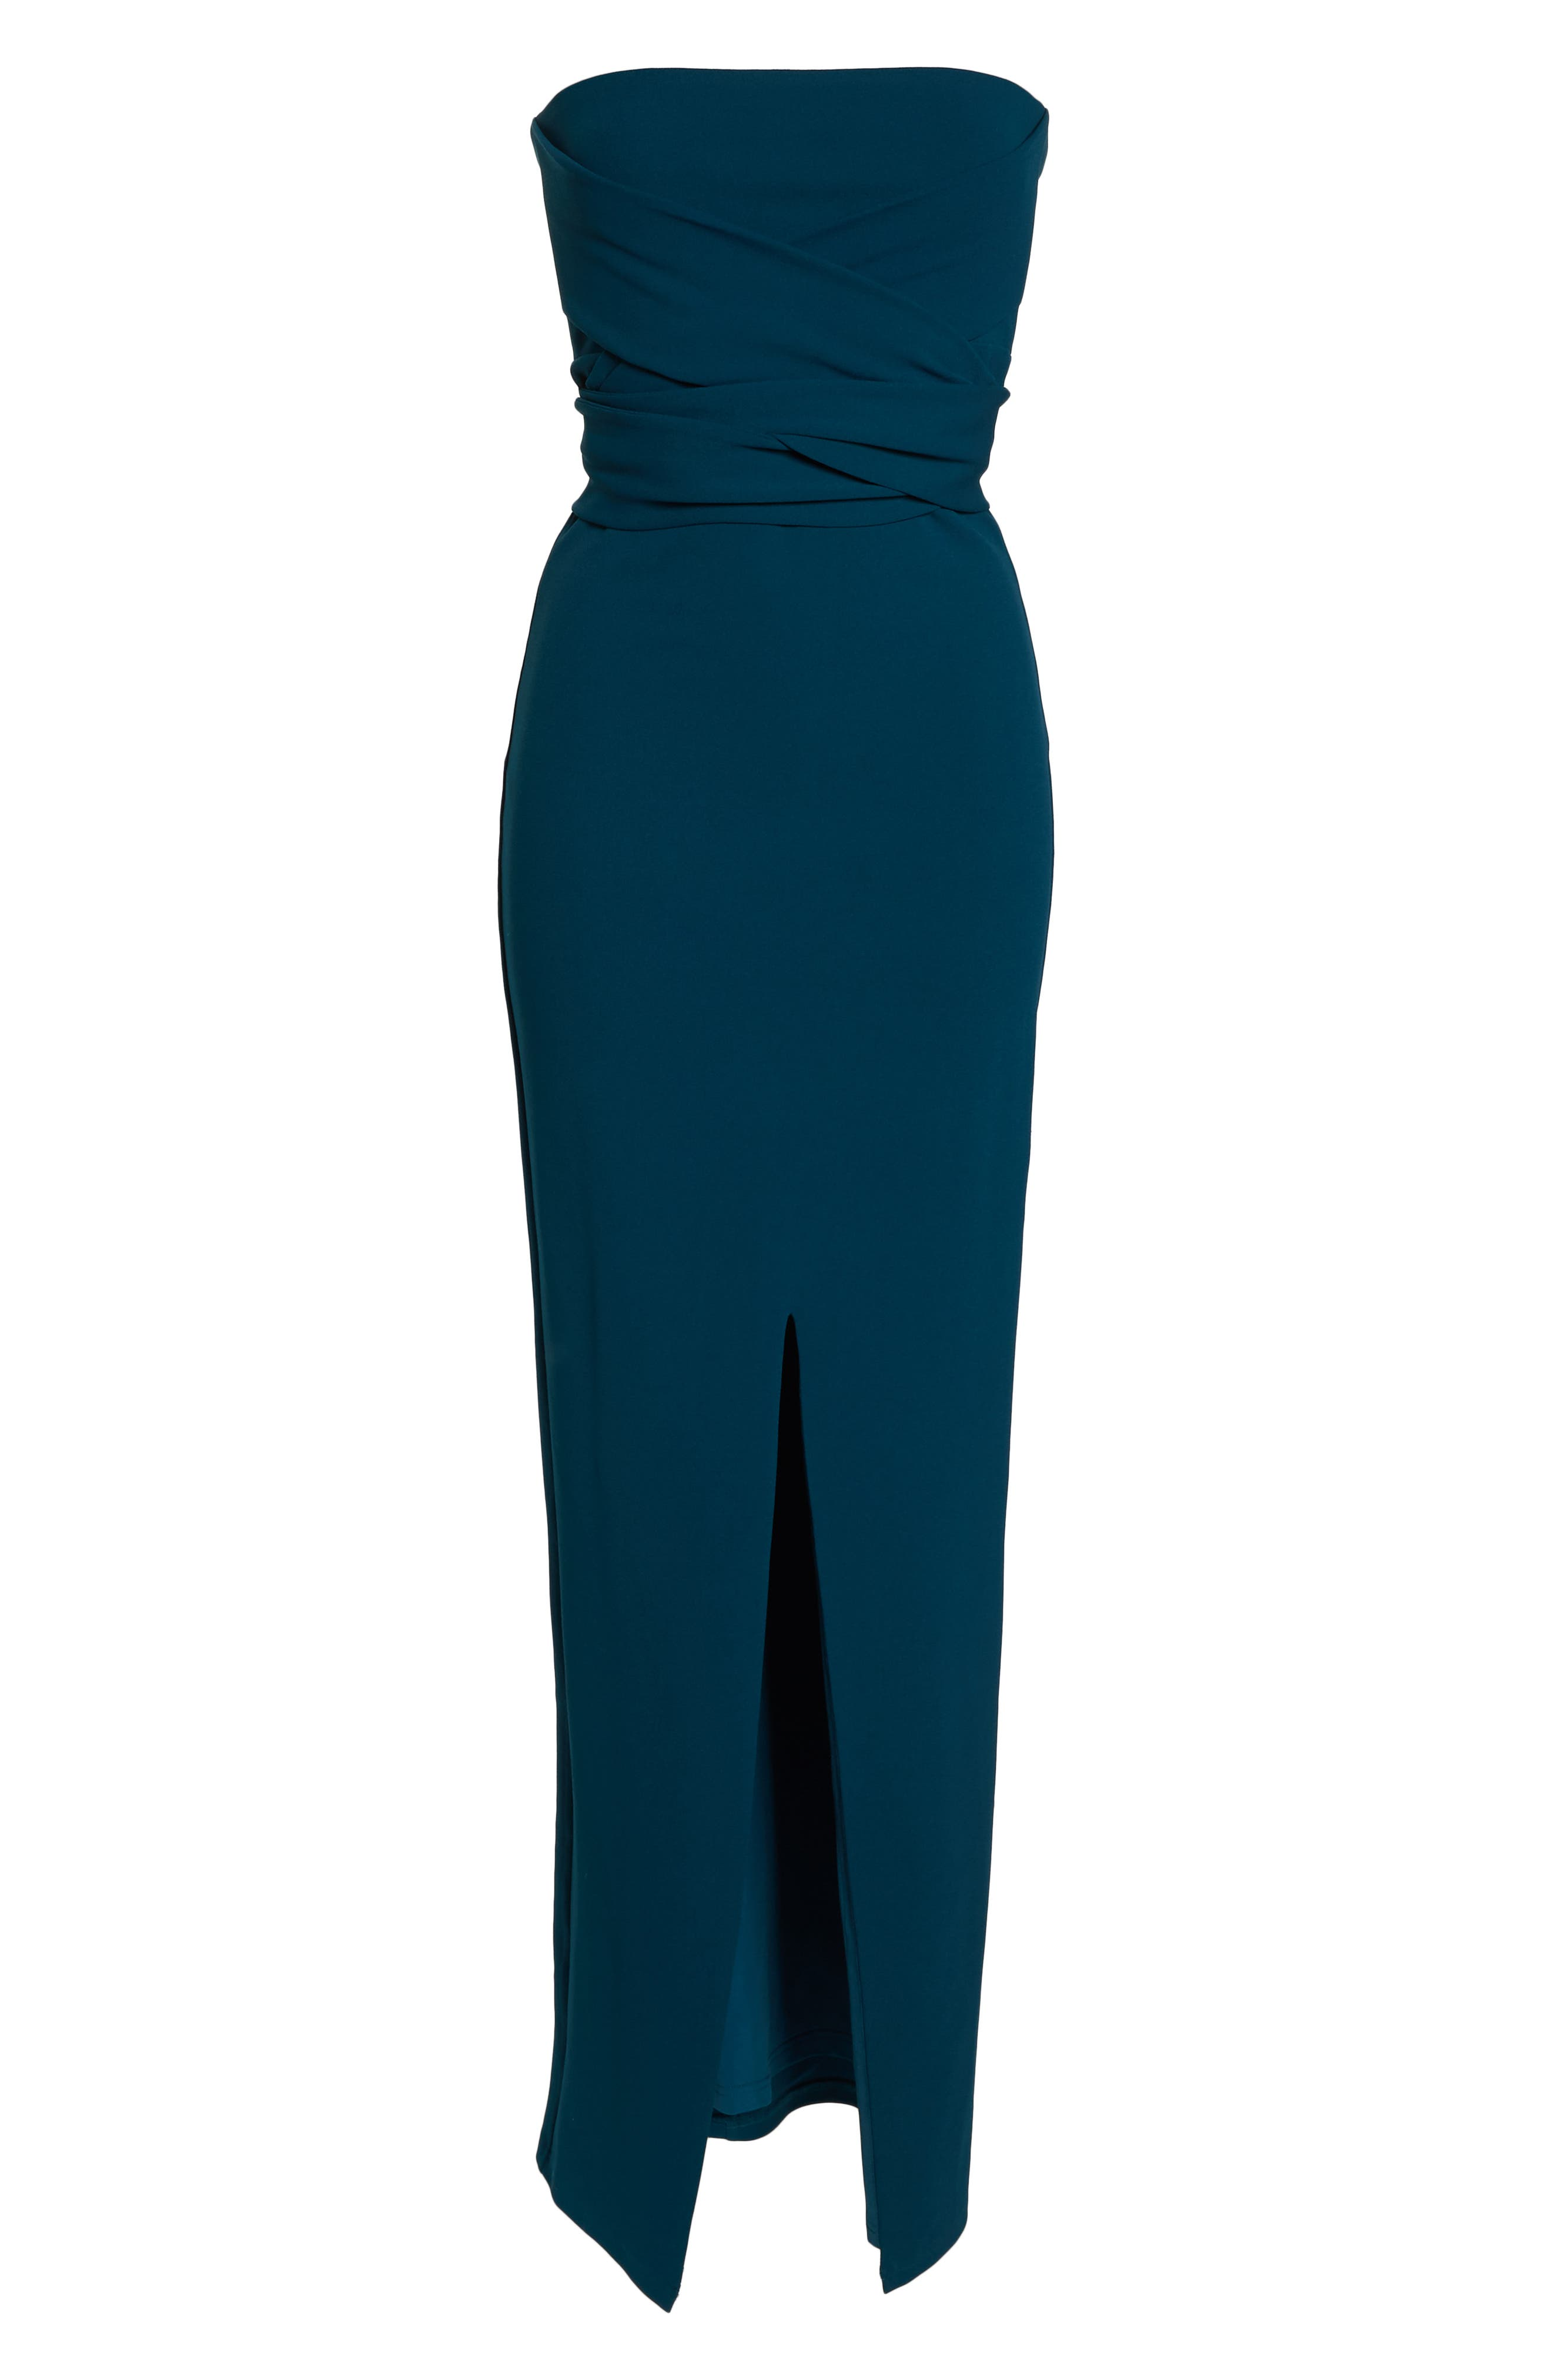 Own the Night Strapless Maxi Dress,                             Alternate thumbnail 7, color,                             TURQUOISE